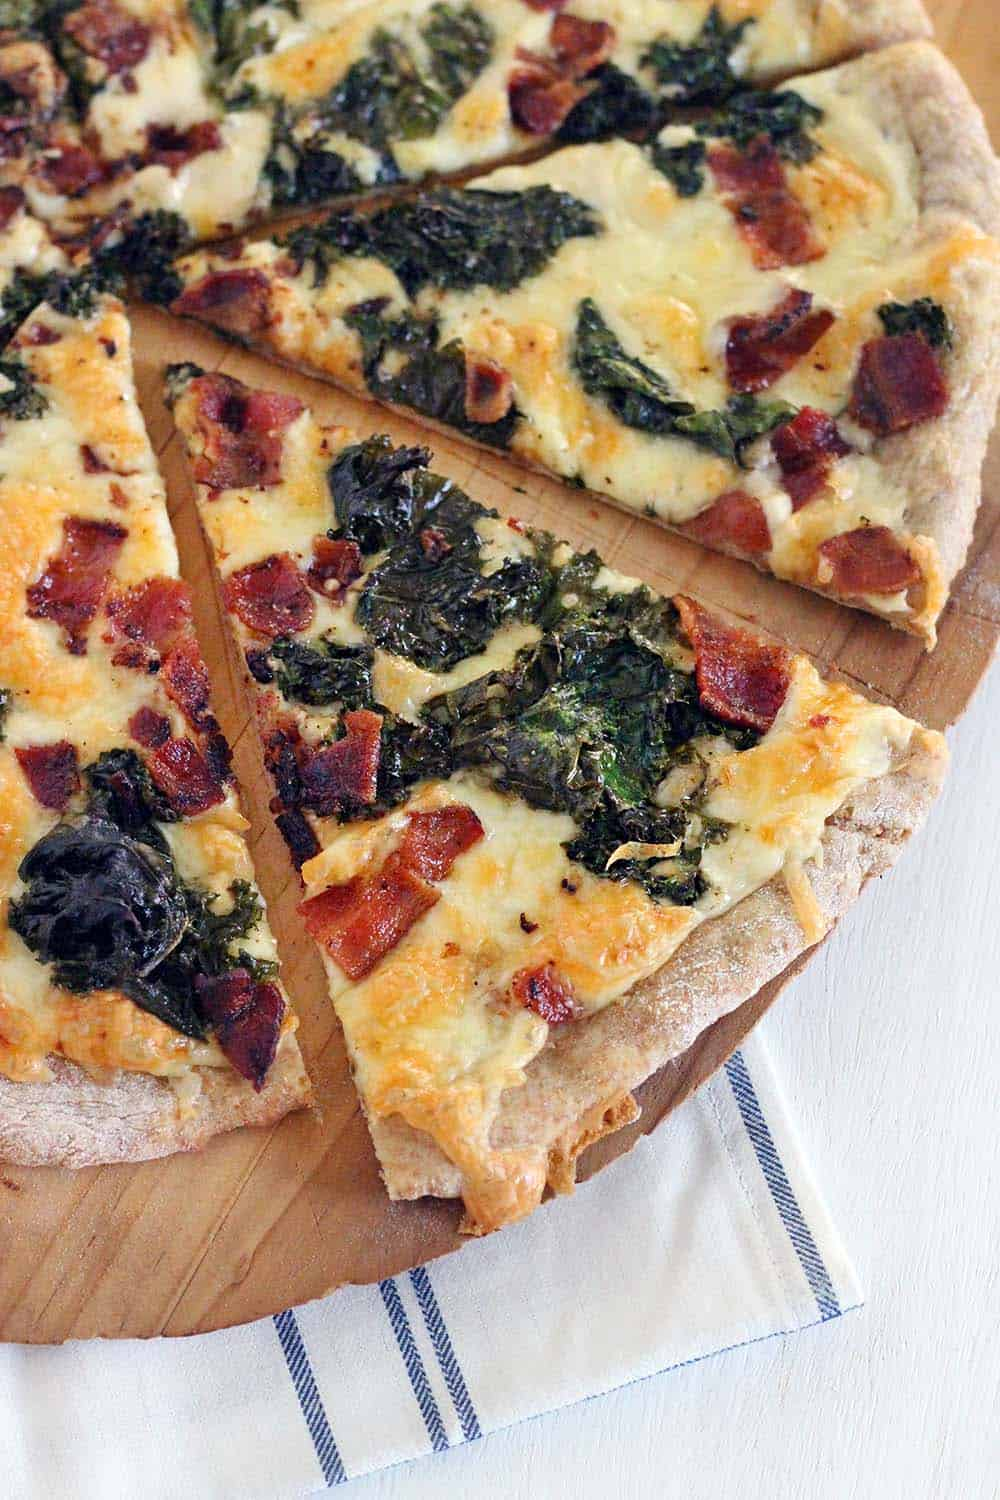 This Bacon and Kale Pizza is topped with super crispy kale and bacon pieces. This recipe comes together with only 5 ingredients in under 30 minutes!